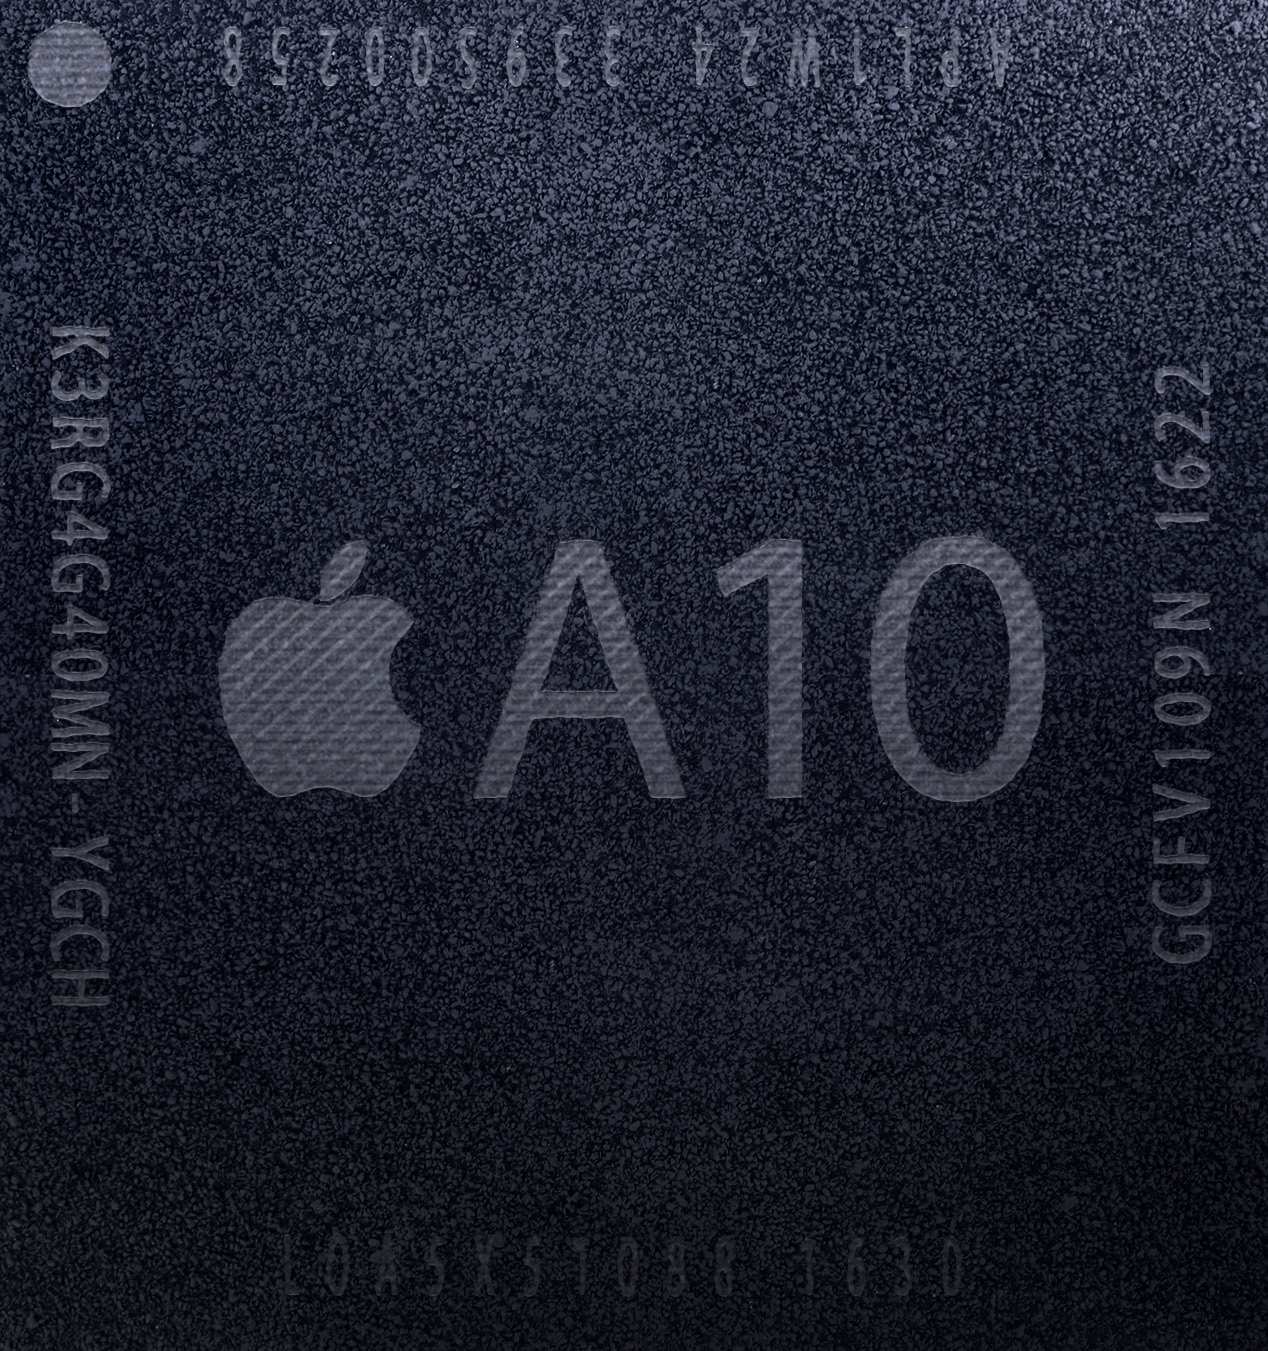 Apple A10 - Wikipedia